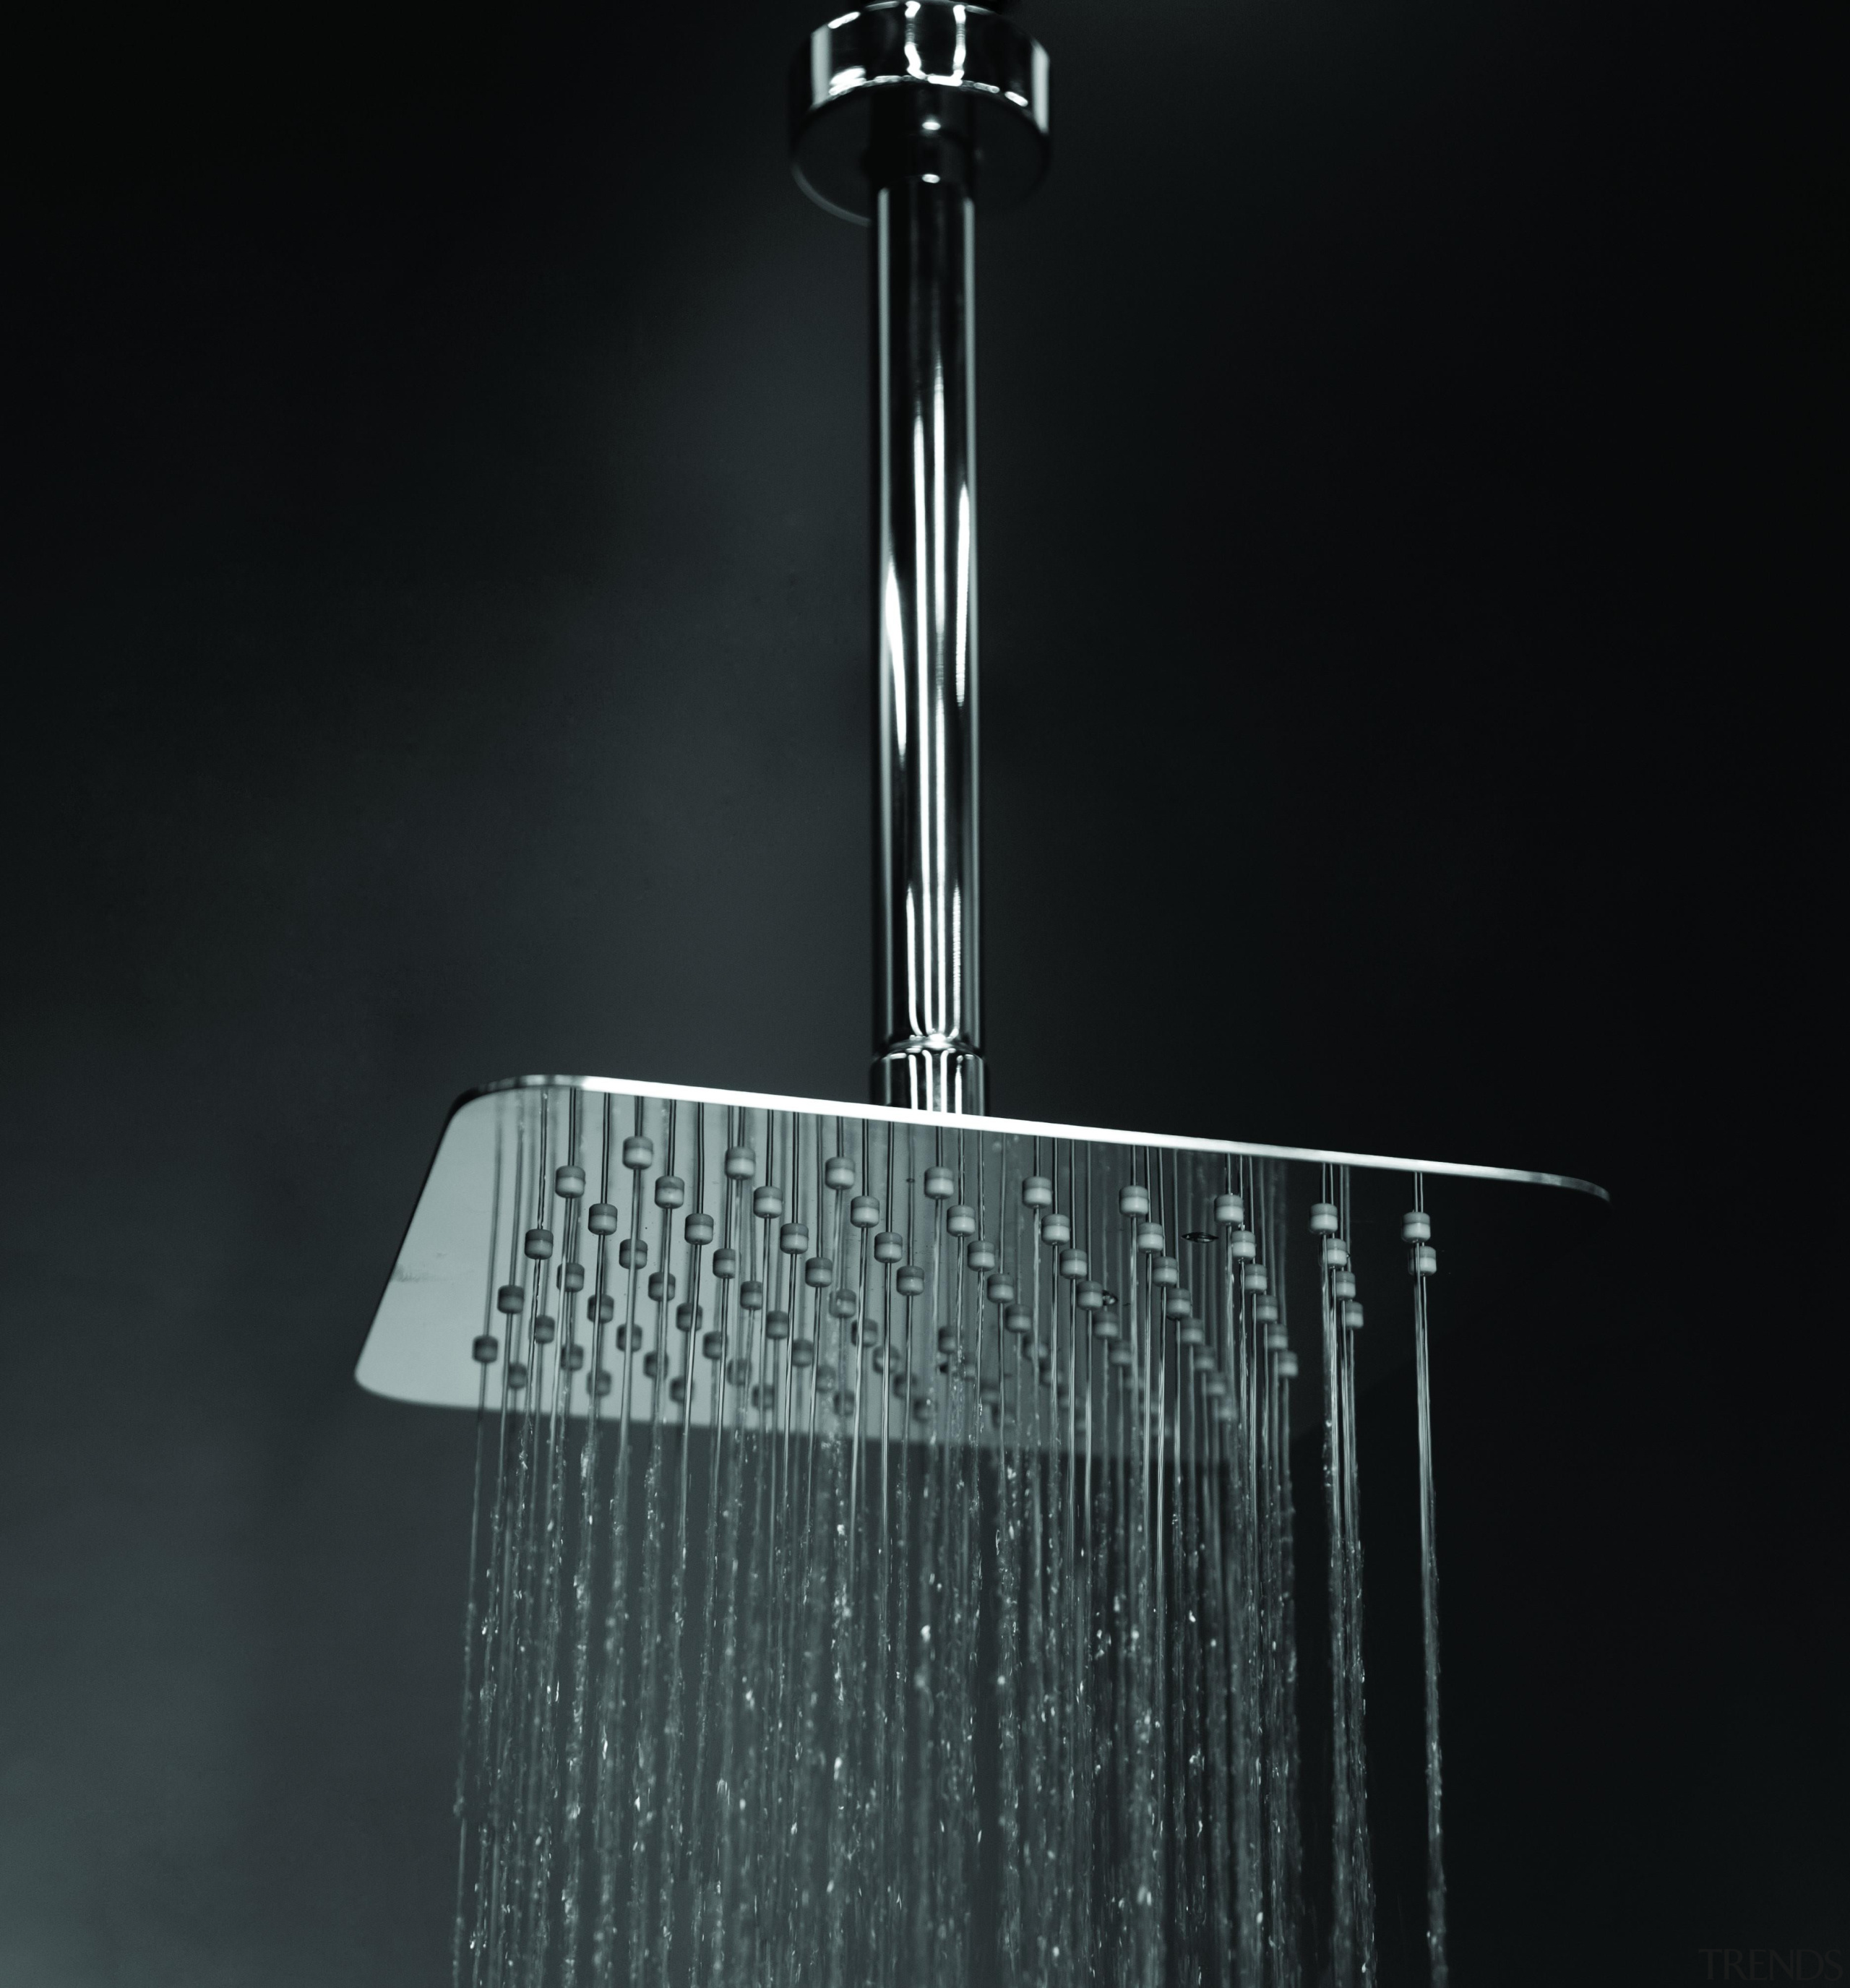 Wall-mount or ceiling-mount tilting square rain shower head black and white, light fixture, plumbing fixture, product design, black